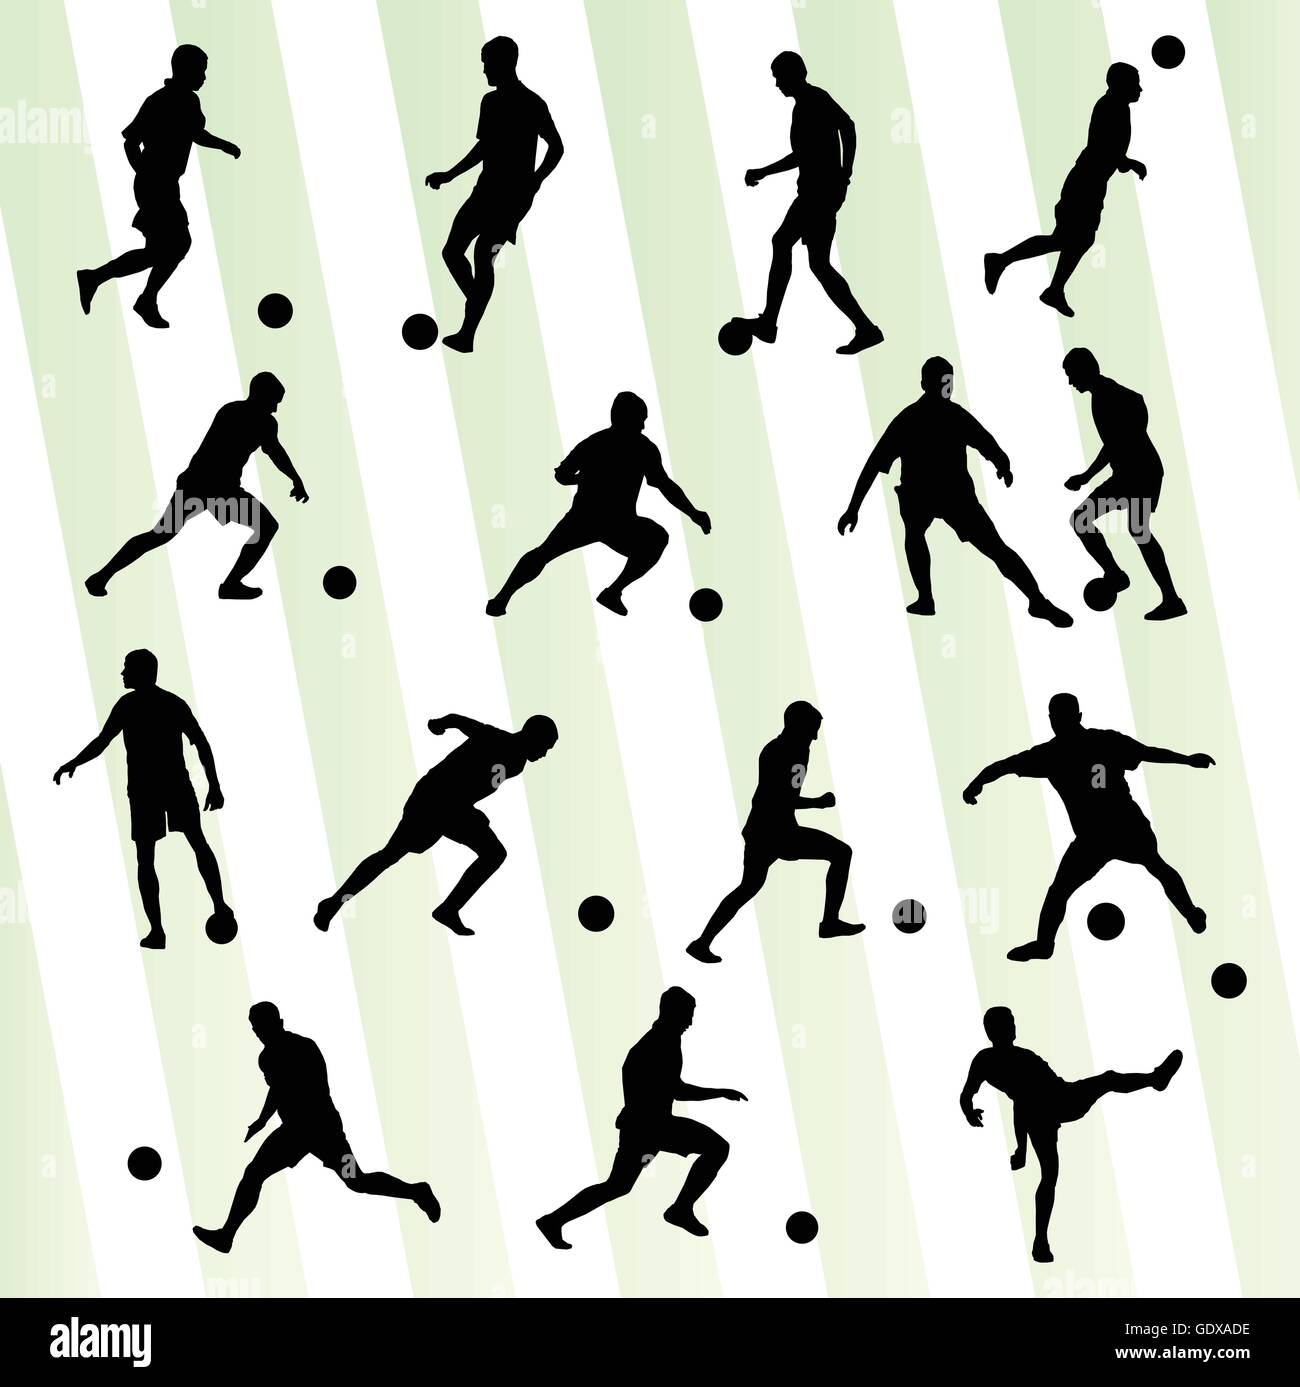 Soccer player silhouette vector background set for poster - Stock Image